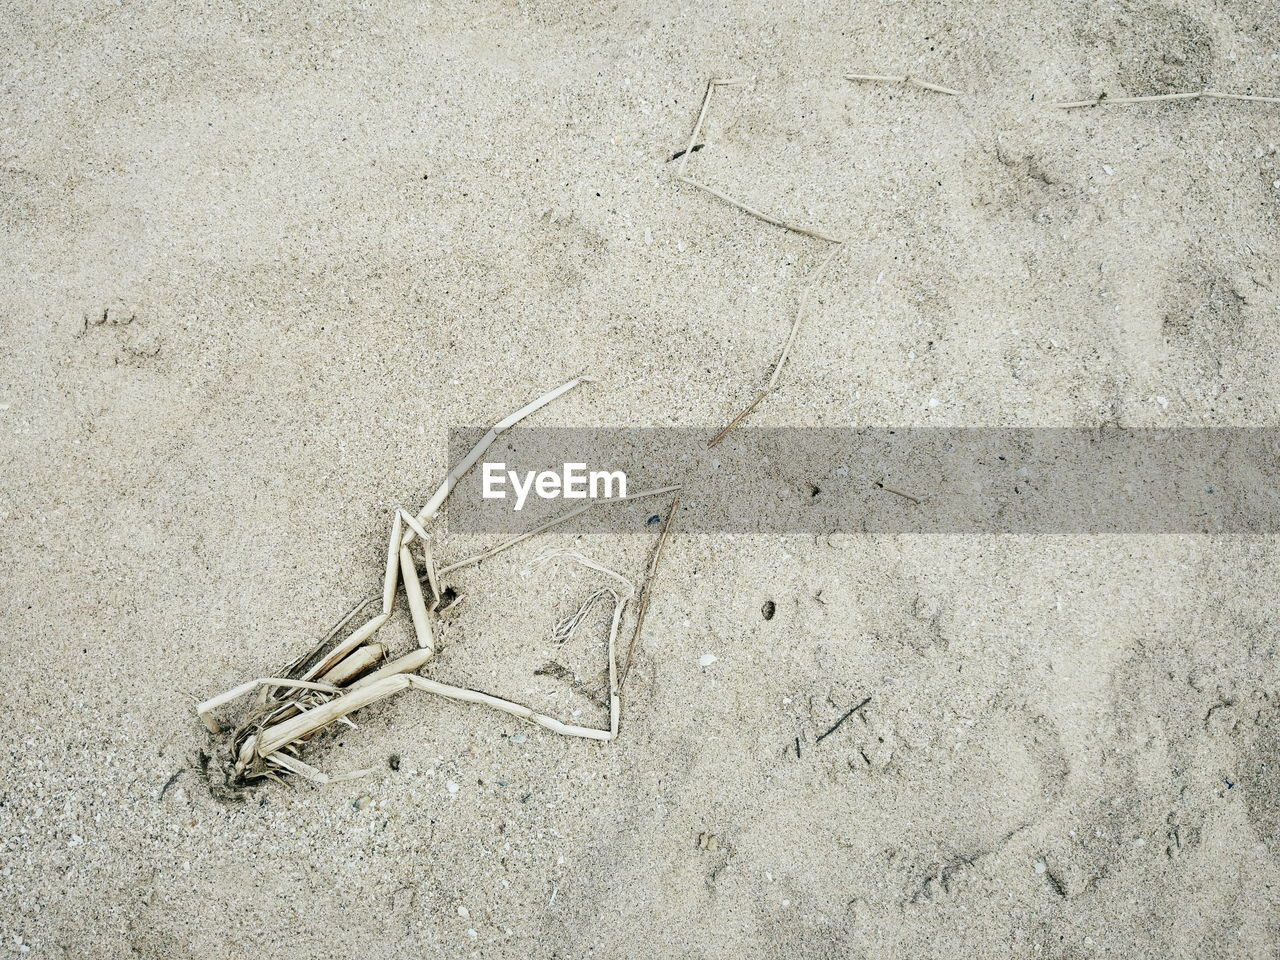 no people, high angle view, day, outdoors, sand, nature, animal themes, close-up